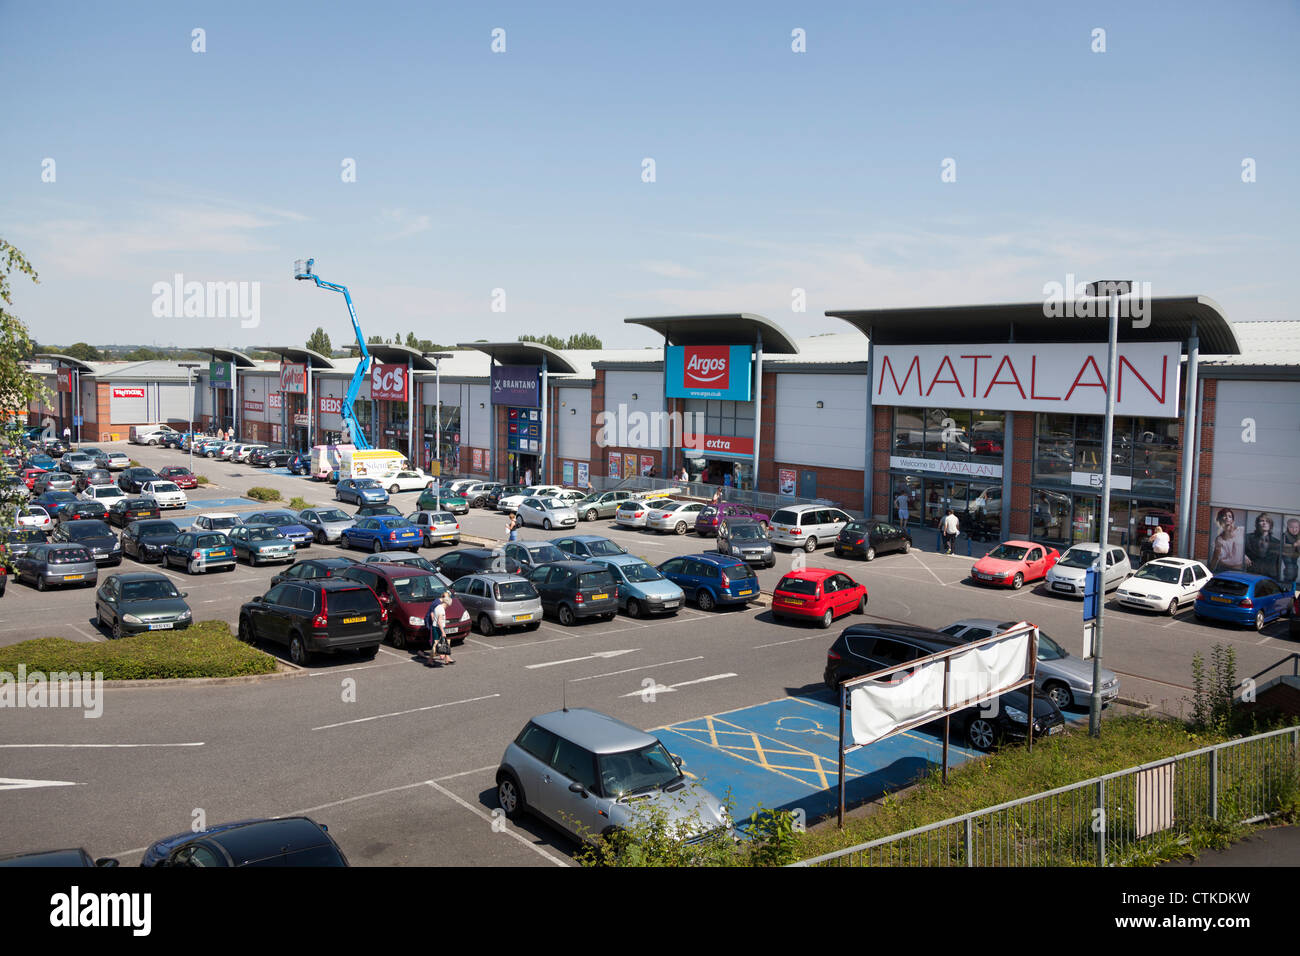 retail out of town park with various stores and car park